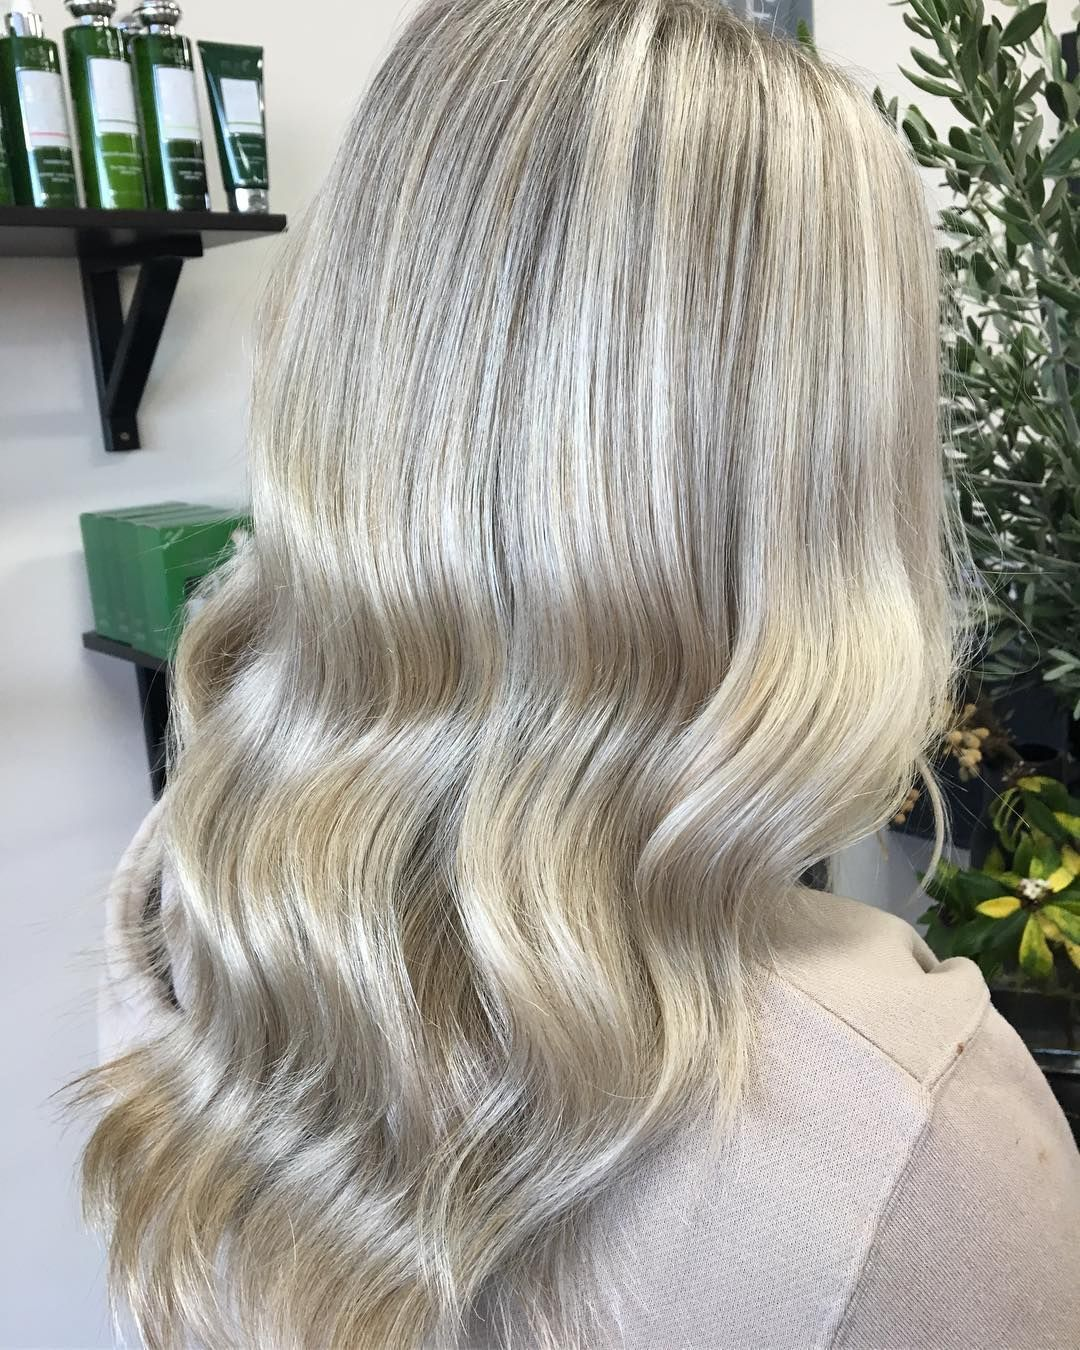 From Toning To Treatments Proper Haircare Is An Integral Part Of Keeping Your Strands Healthy And Happy And Looking Their B Hair Studio Ash Blonde Hair Hair